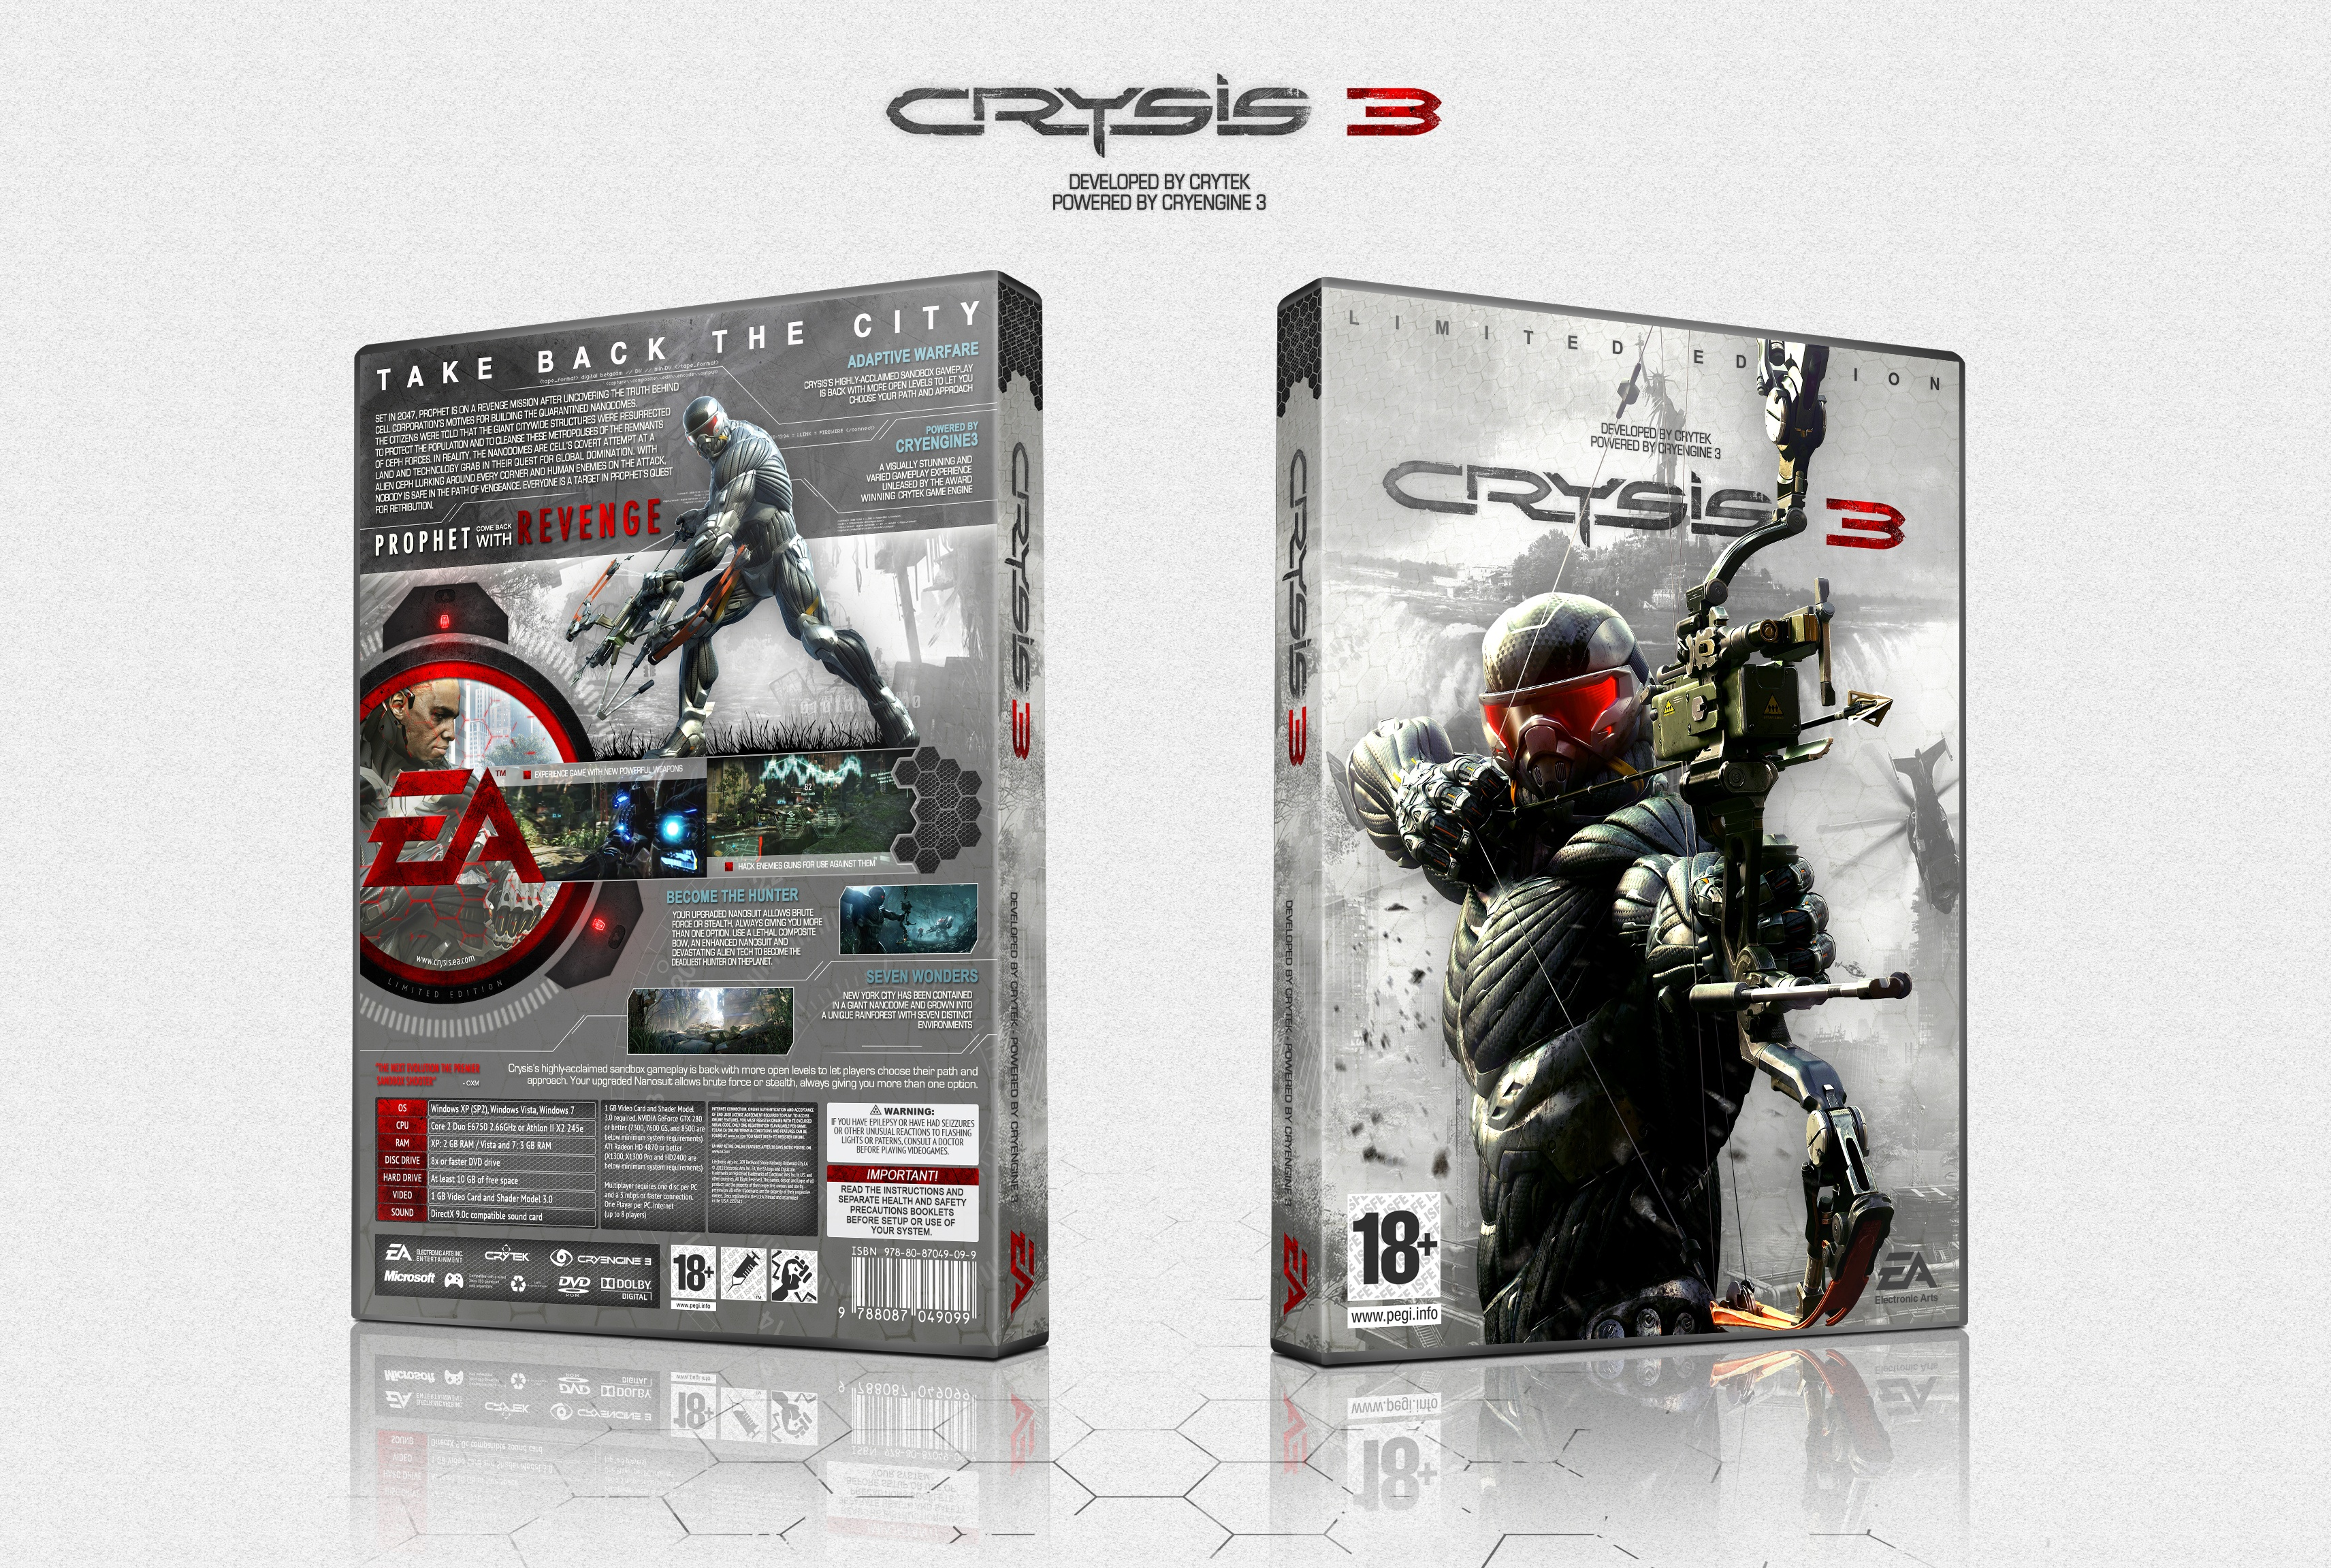 Crysis 3 Limited Edition box cover